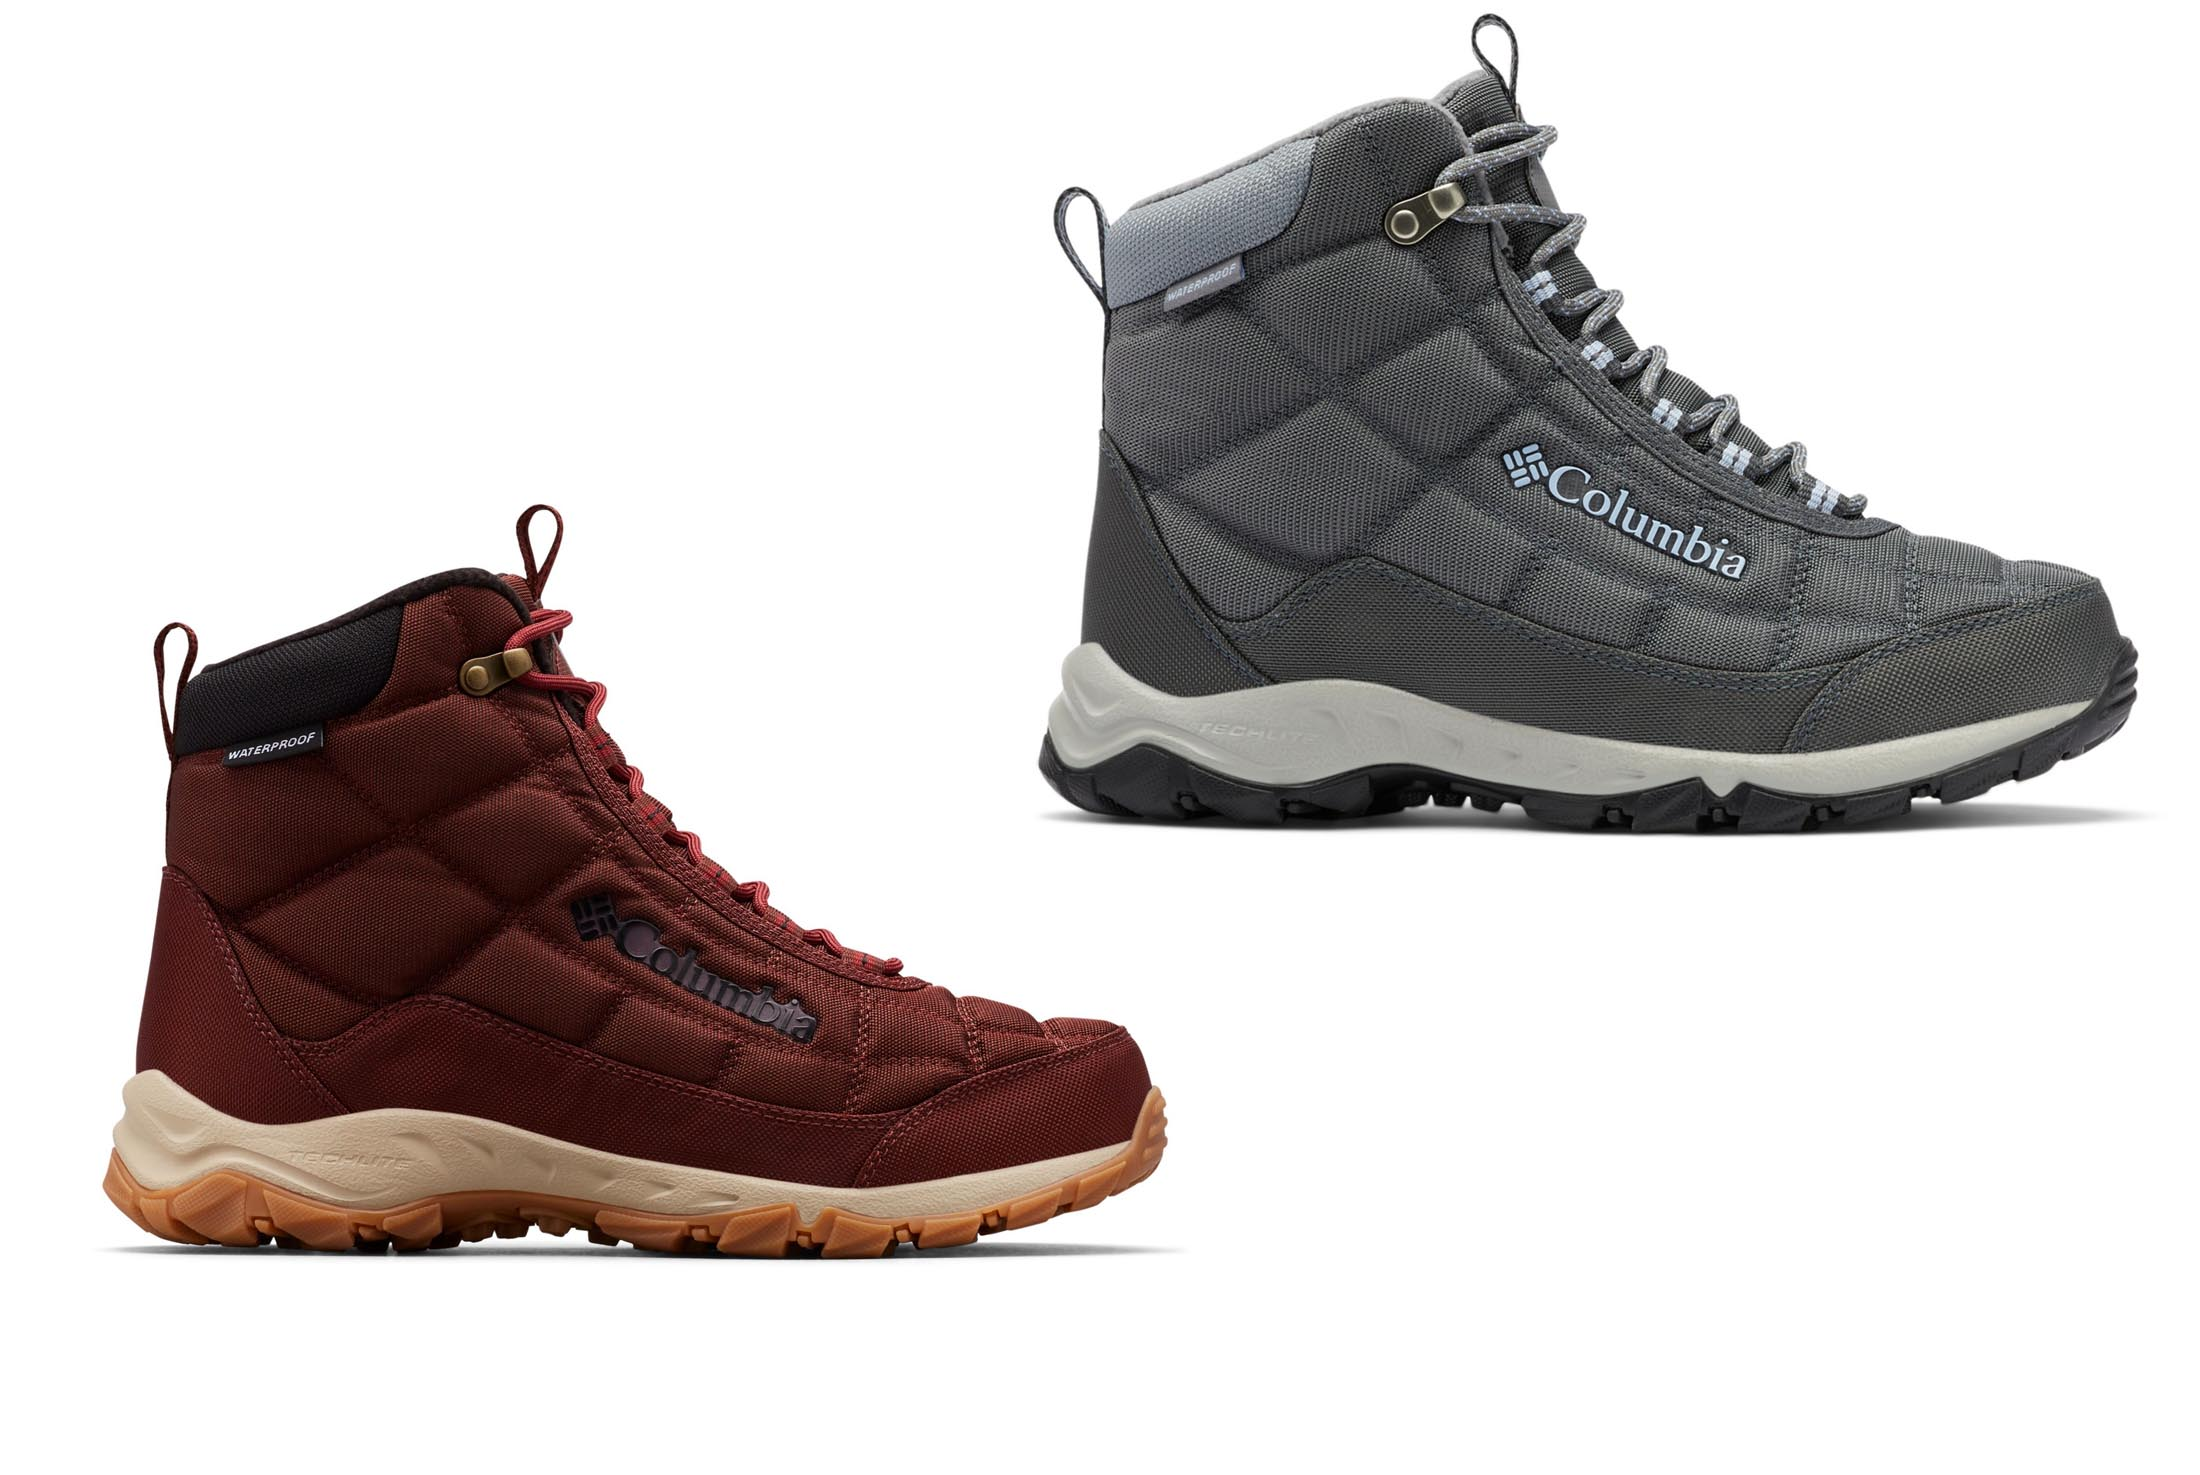 Fire camp boots